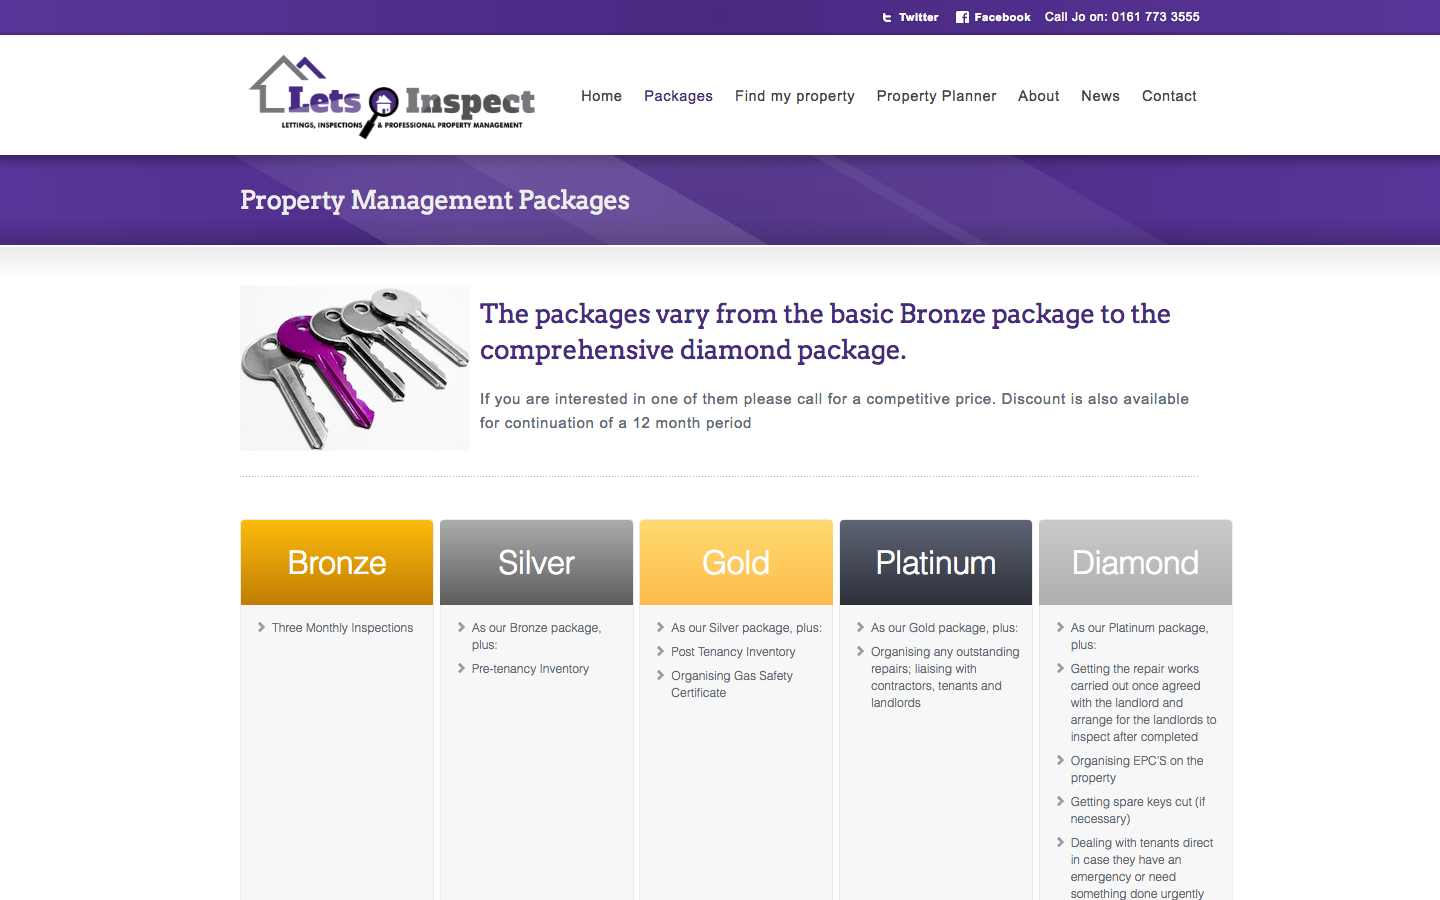 Screen Shot 2016 05 19 at 15.55.44 - Branding, web design and marketing campaign for property management company